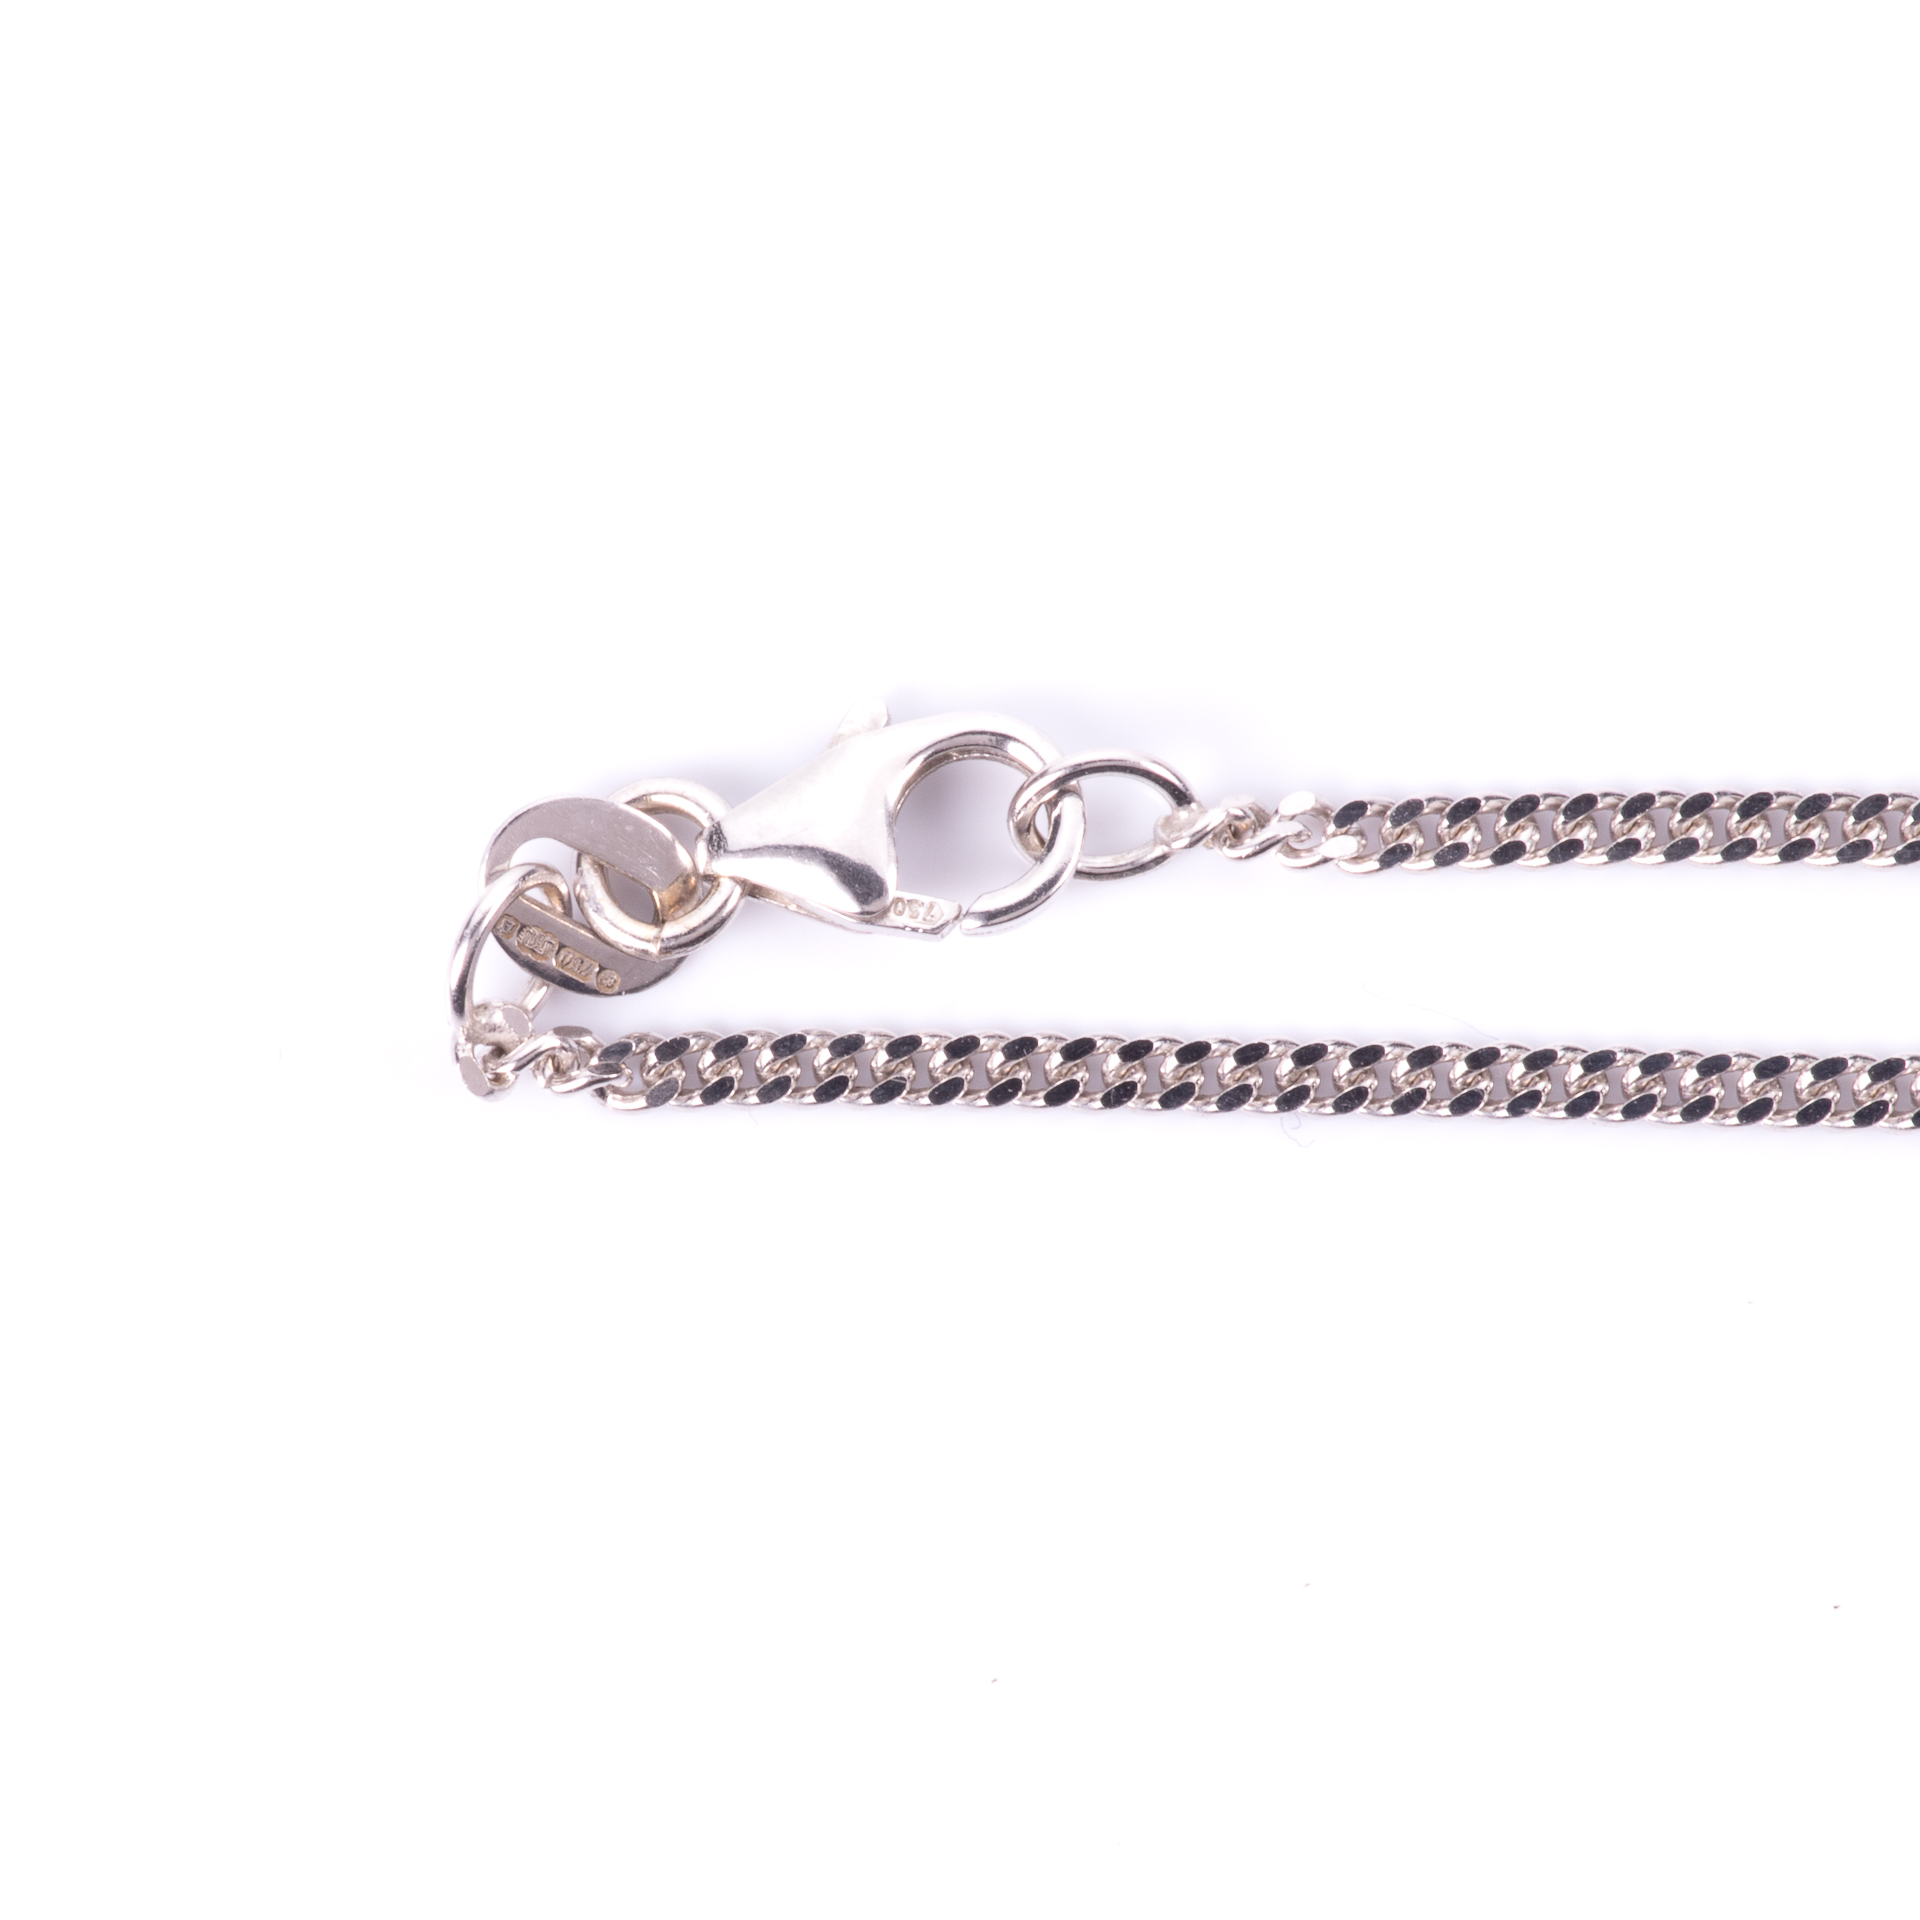 18ct White Gold Necklace - Image 2 of 2